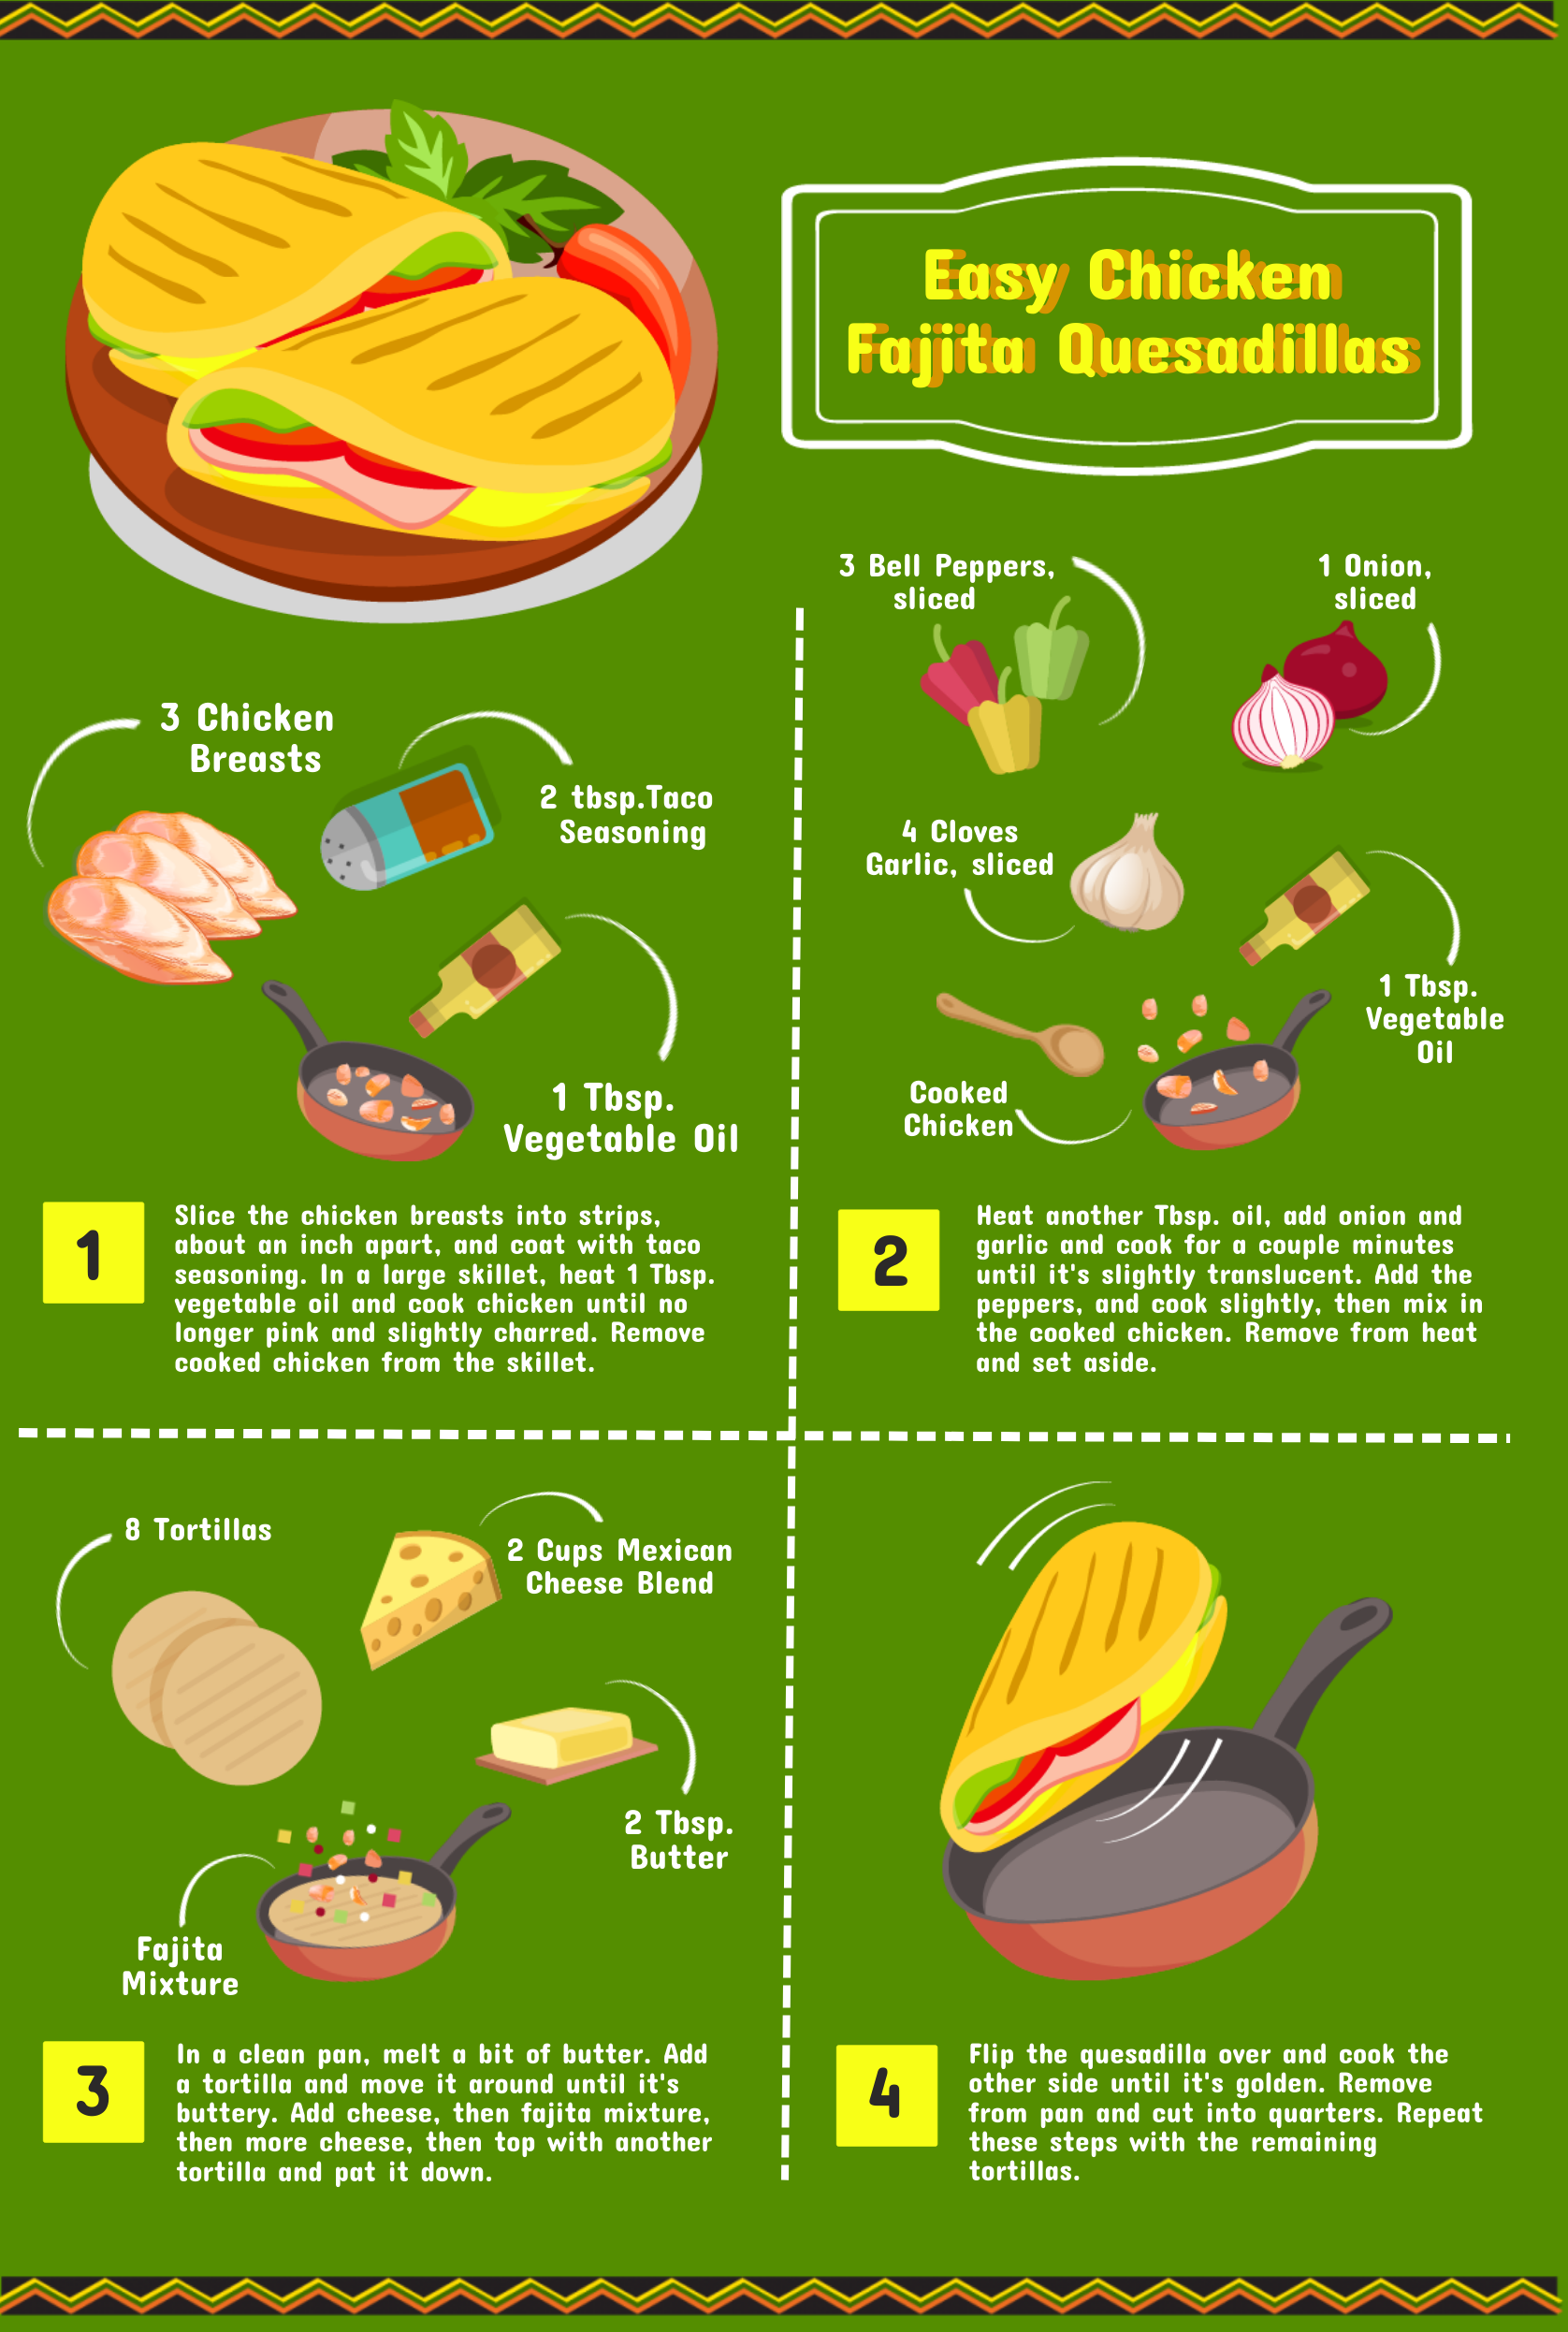 an infographic template about a quisadillas recipe.